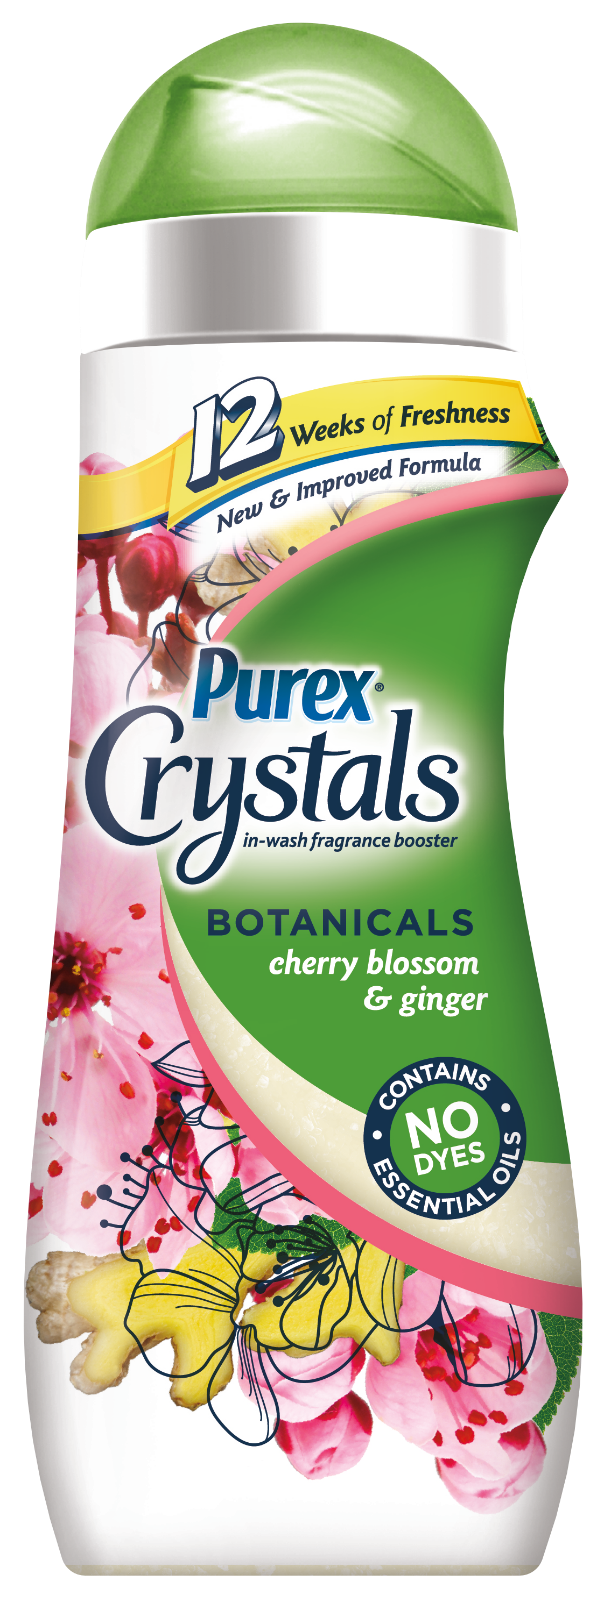 Purex Crystals Botanicals Cherry Blossom and Ginger